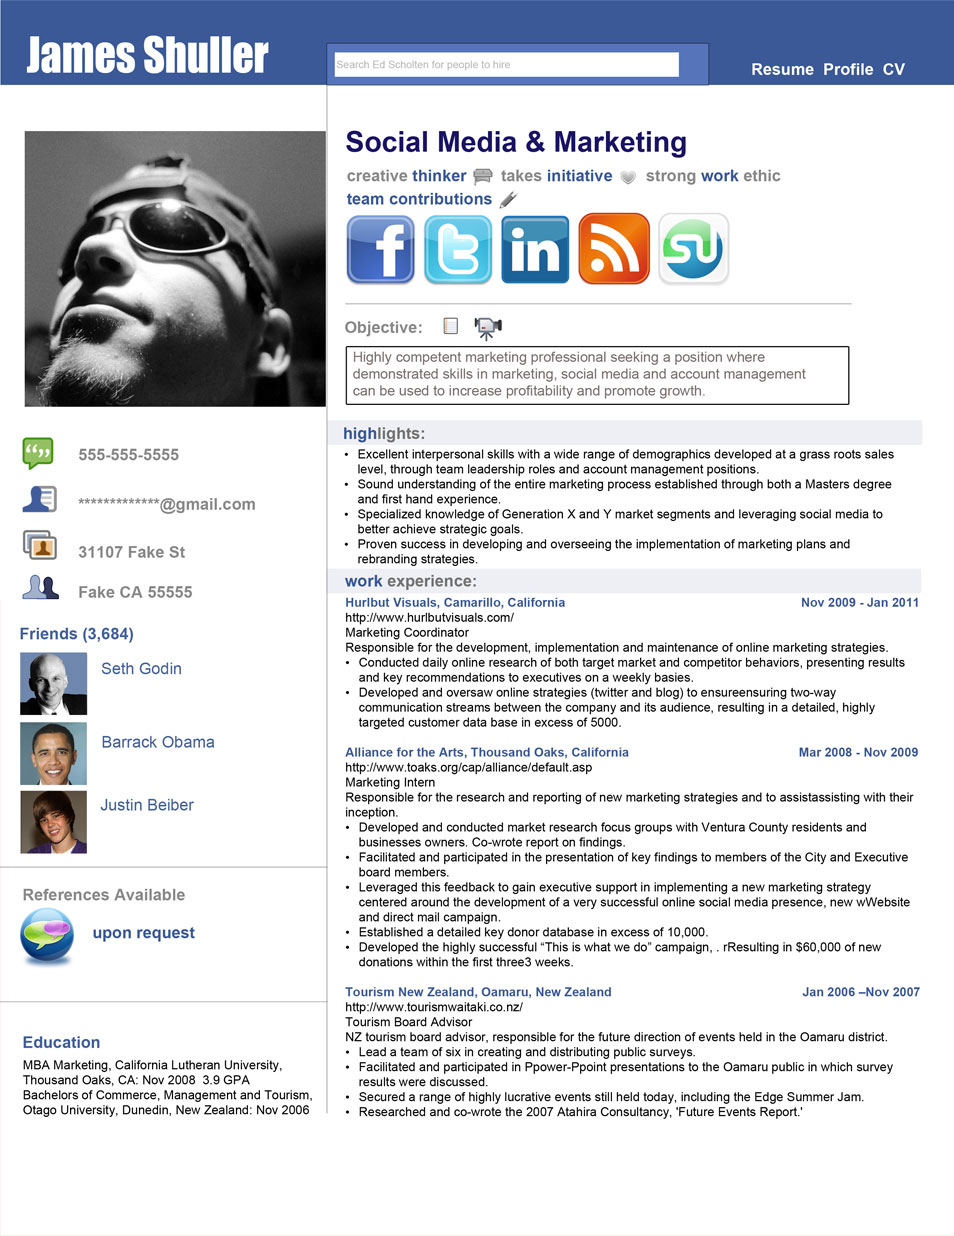 Opposenewapstandardsus  Terrific  Creative Cvresume Design Inspiration With Goodlooking Resume  Social Network Adv With Cute Caregiver Resume Sample Also Engineering Resume Tips In Addition Medical Resume Sample And Actor Resumes As Well As Sample Waitress Resume Additionally Resume Copy And Paste From Cssauthorcom With Opposenewapstandardsus  Goodlooking  Creative Cvresume Design Inspiration With Cute Resume  Social Network Adv And Terrific Caregiver Resume Sample Also Engineering Resume Tips In Addition Medical Resume Sample From Cssauthorcom